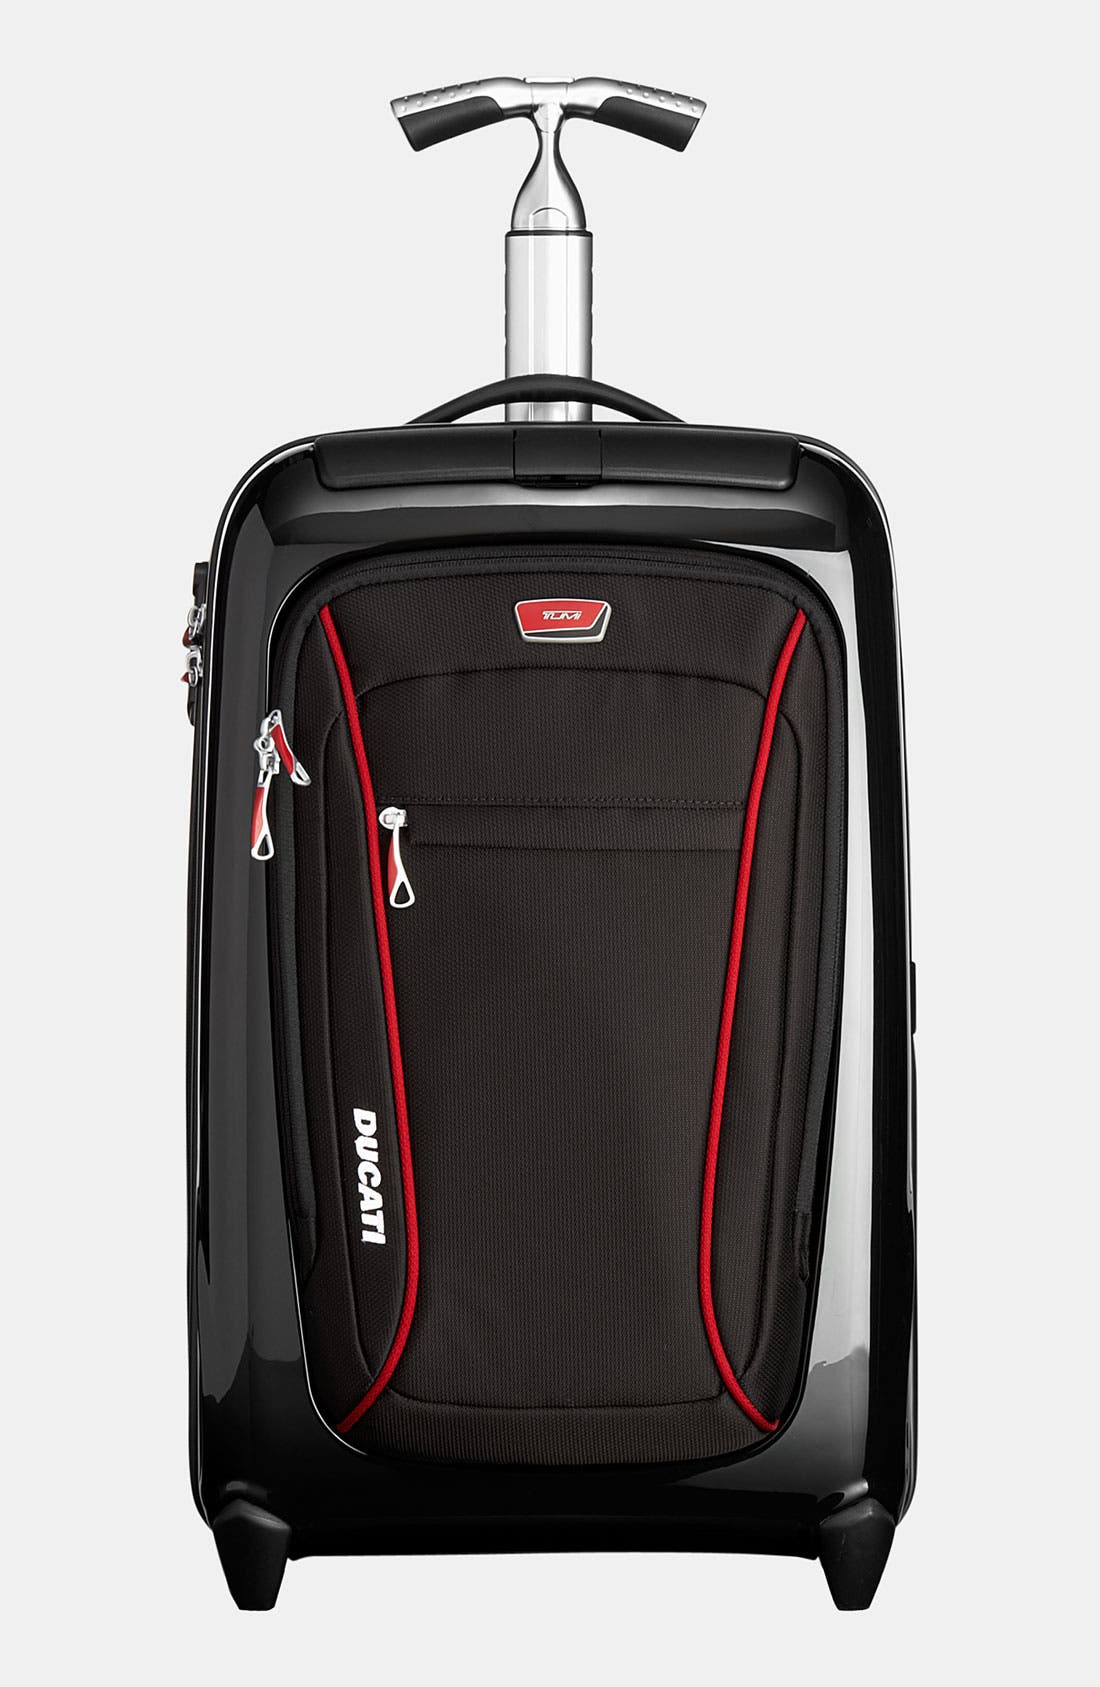 Main Image - Tumi 'Ducati - Evoluzione' International Carry-On